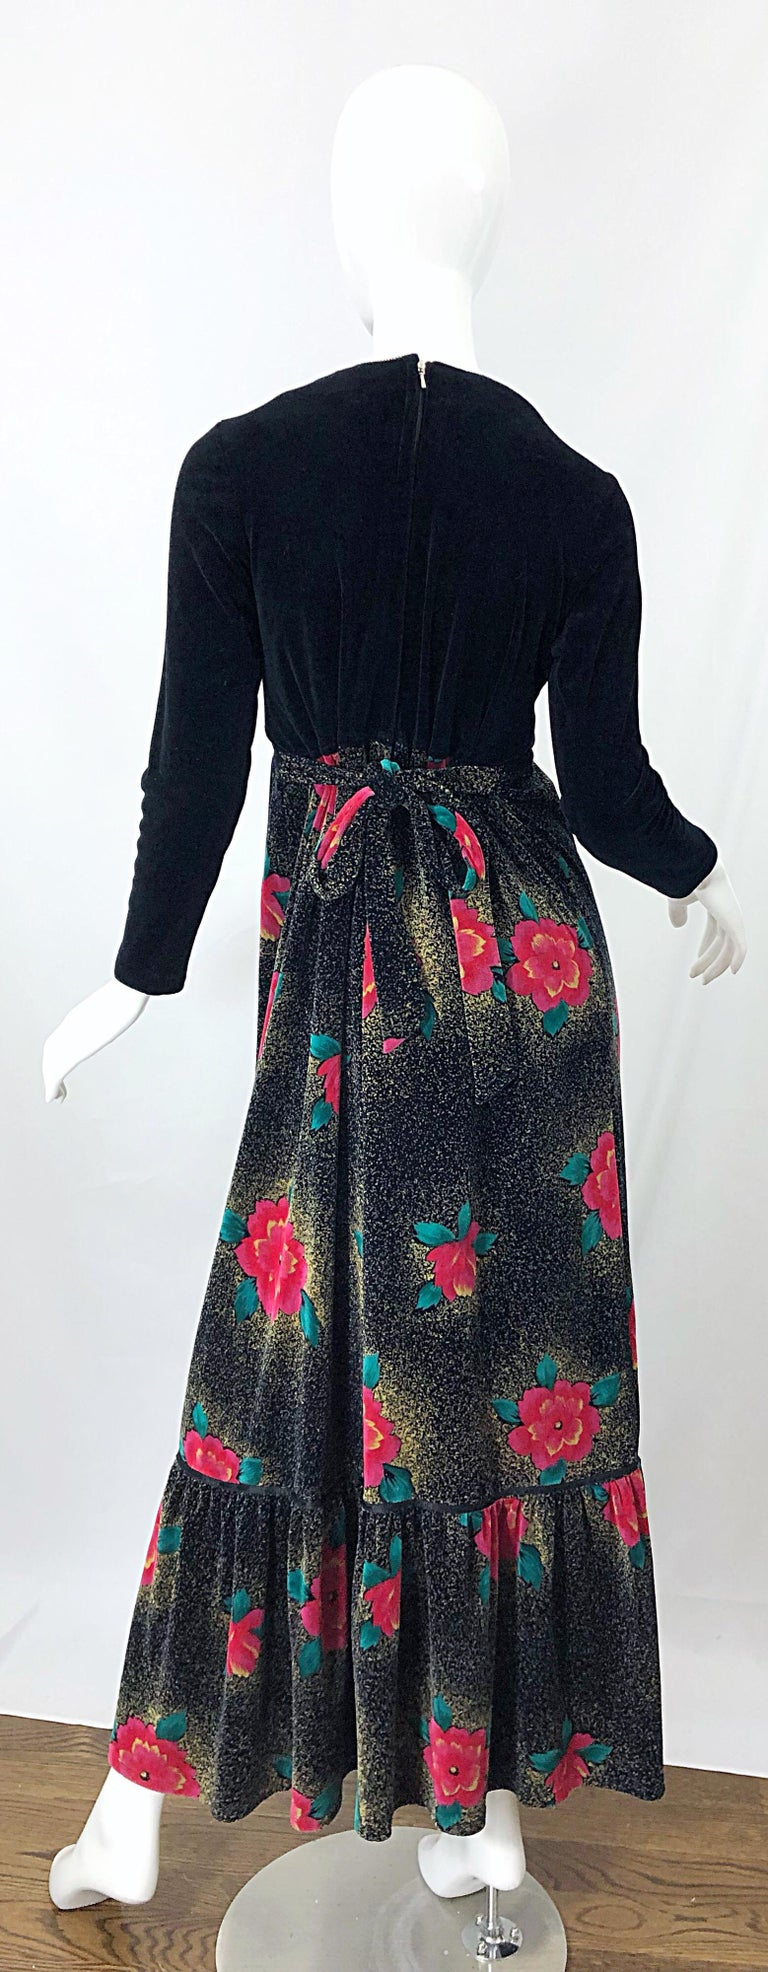 1970s Poinsettia Print Embroidered Beaded Velvet Velour Holiday Maxi Dress Gown For Sale 6